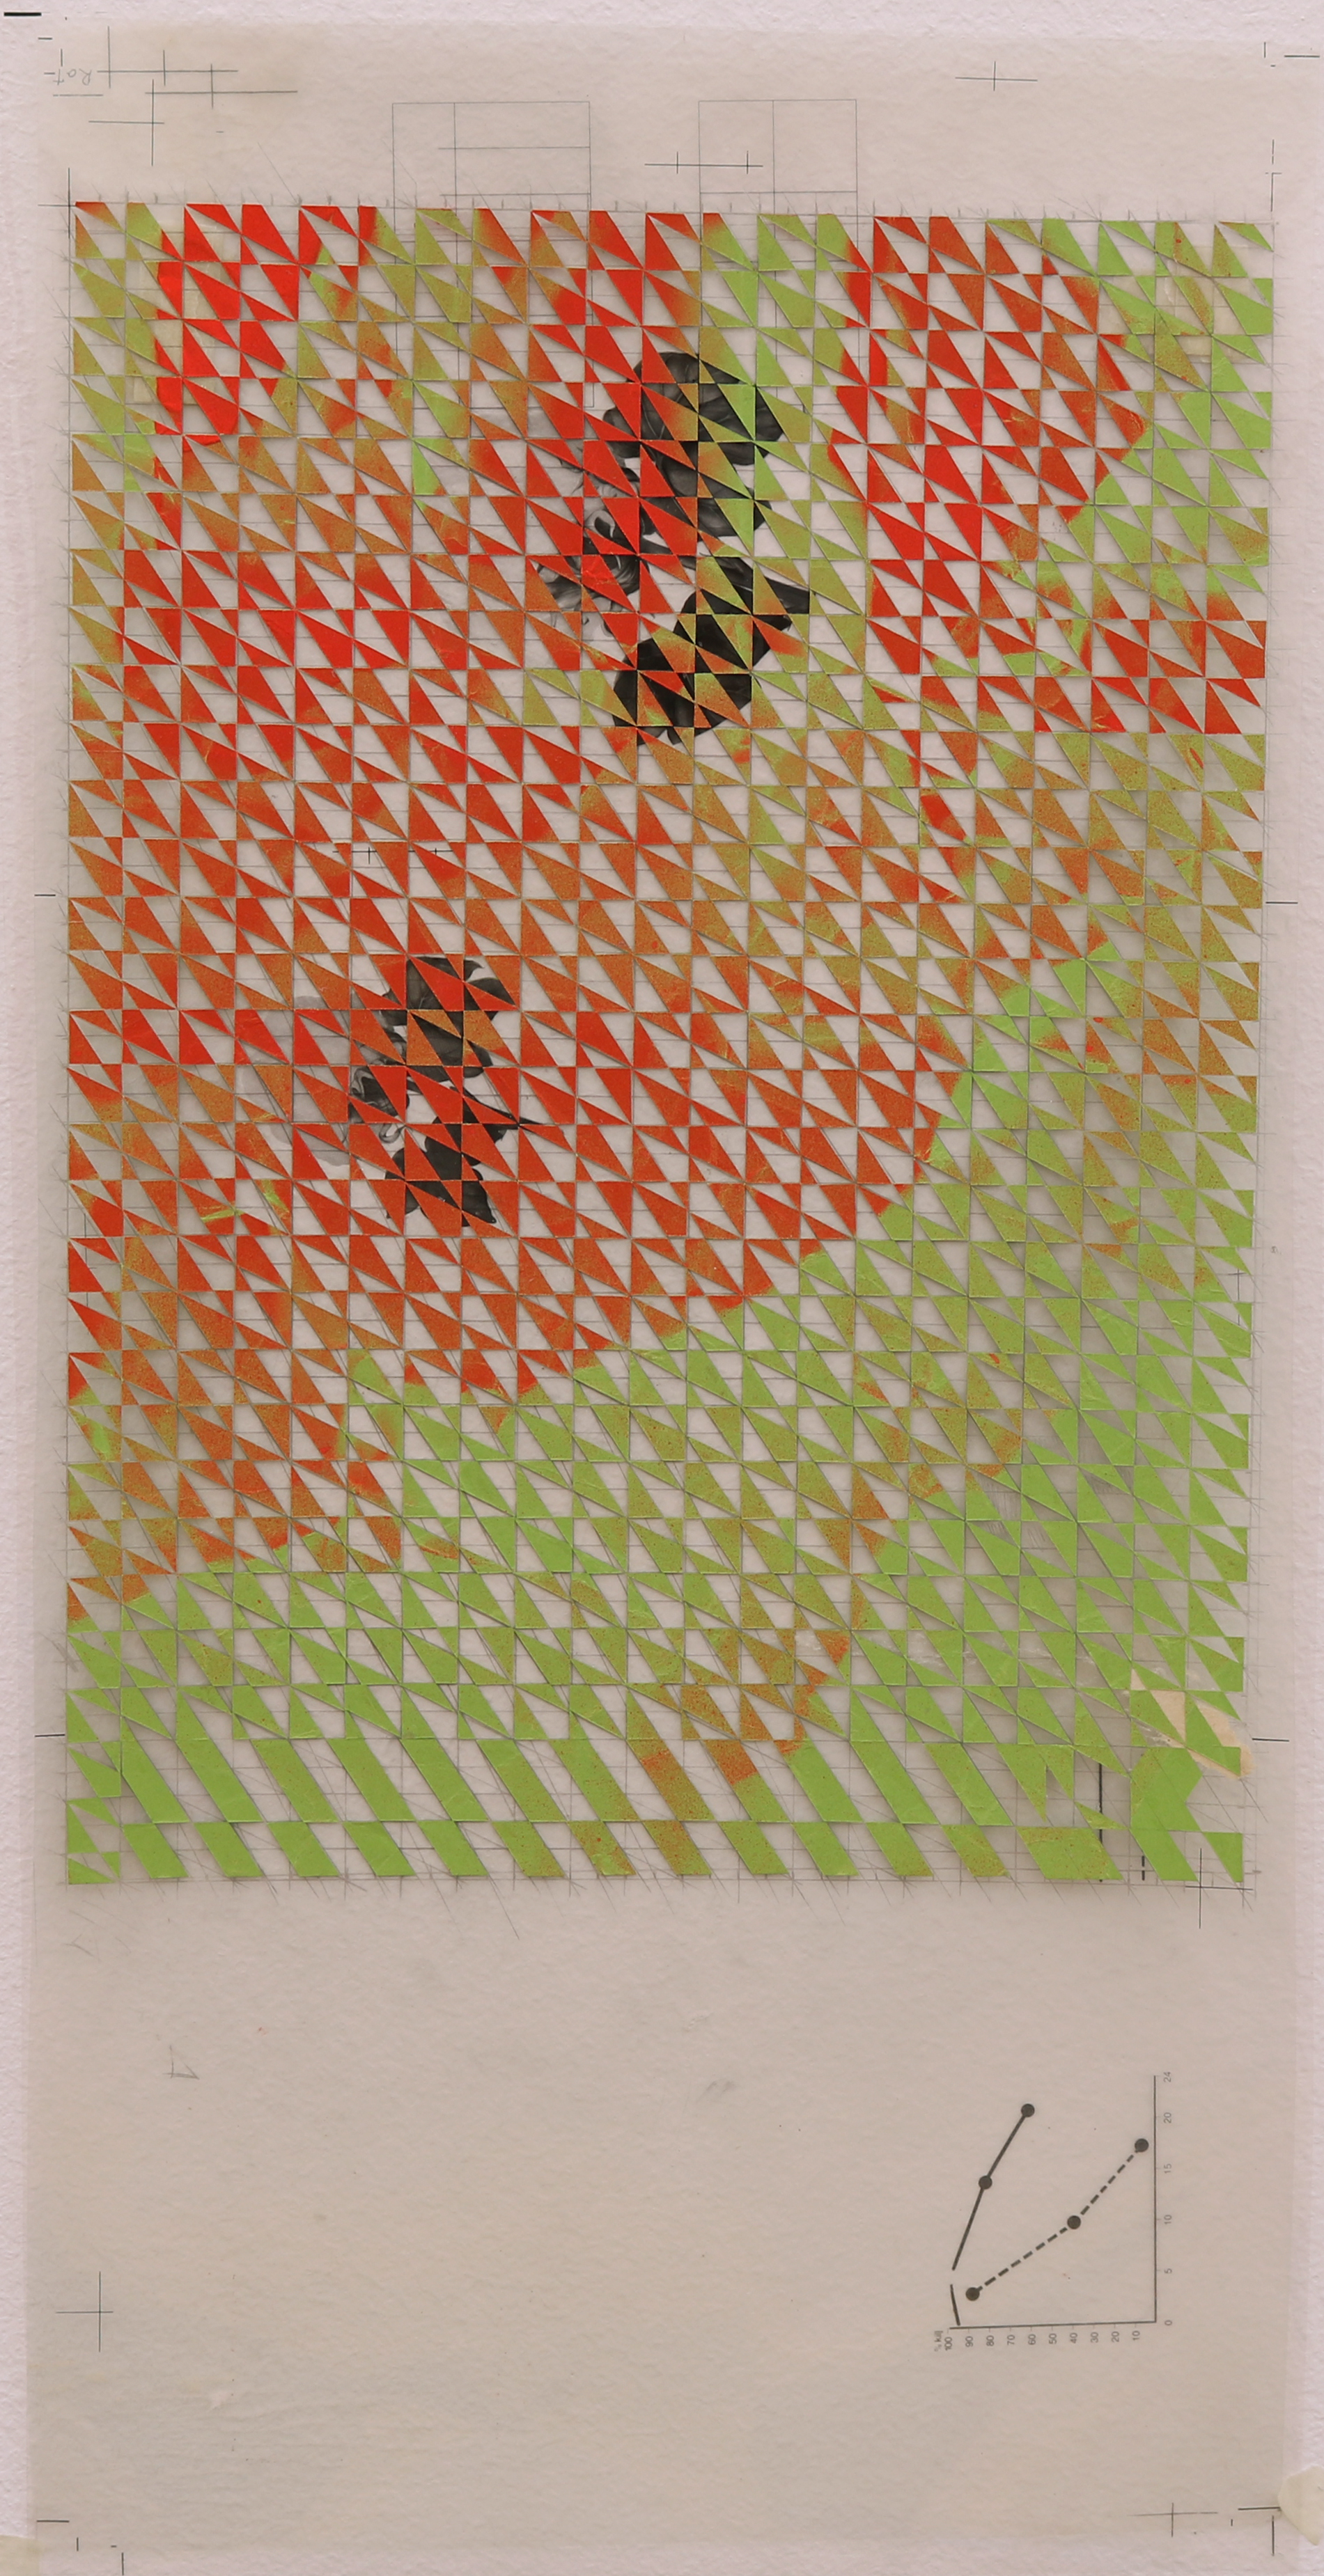 Untitled (red, green), 2016, spray paint on paper collage, on plastic transparencies from my father's office, 20 x 50 cm.